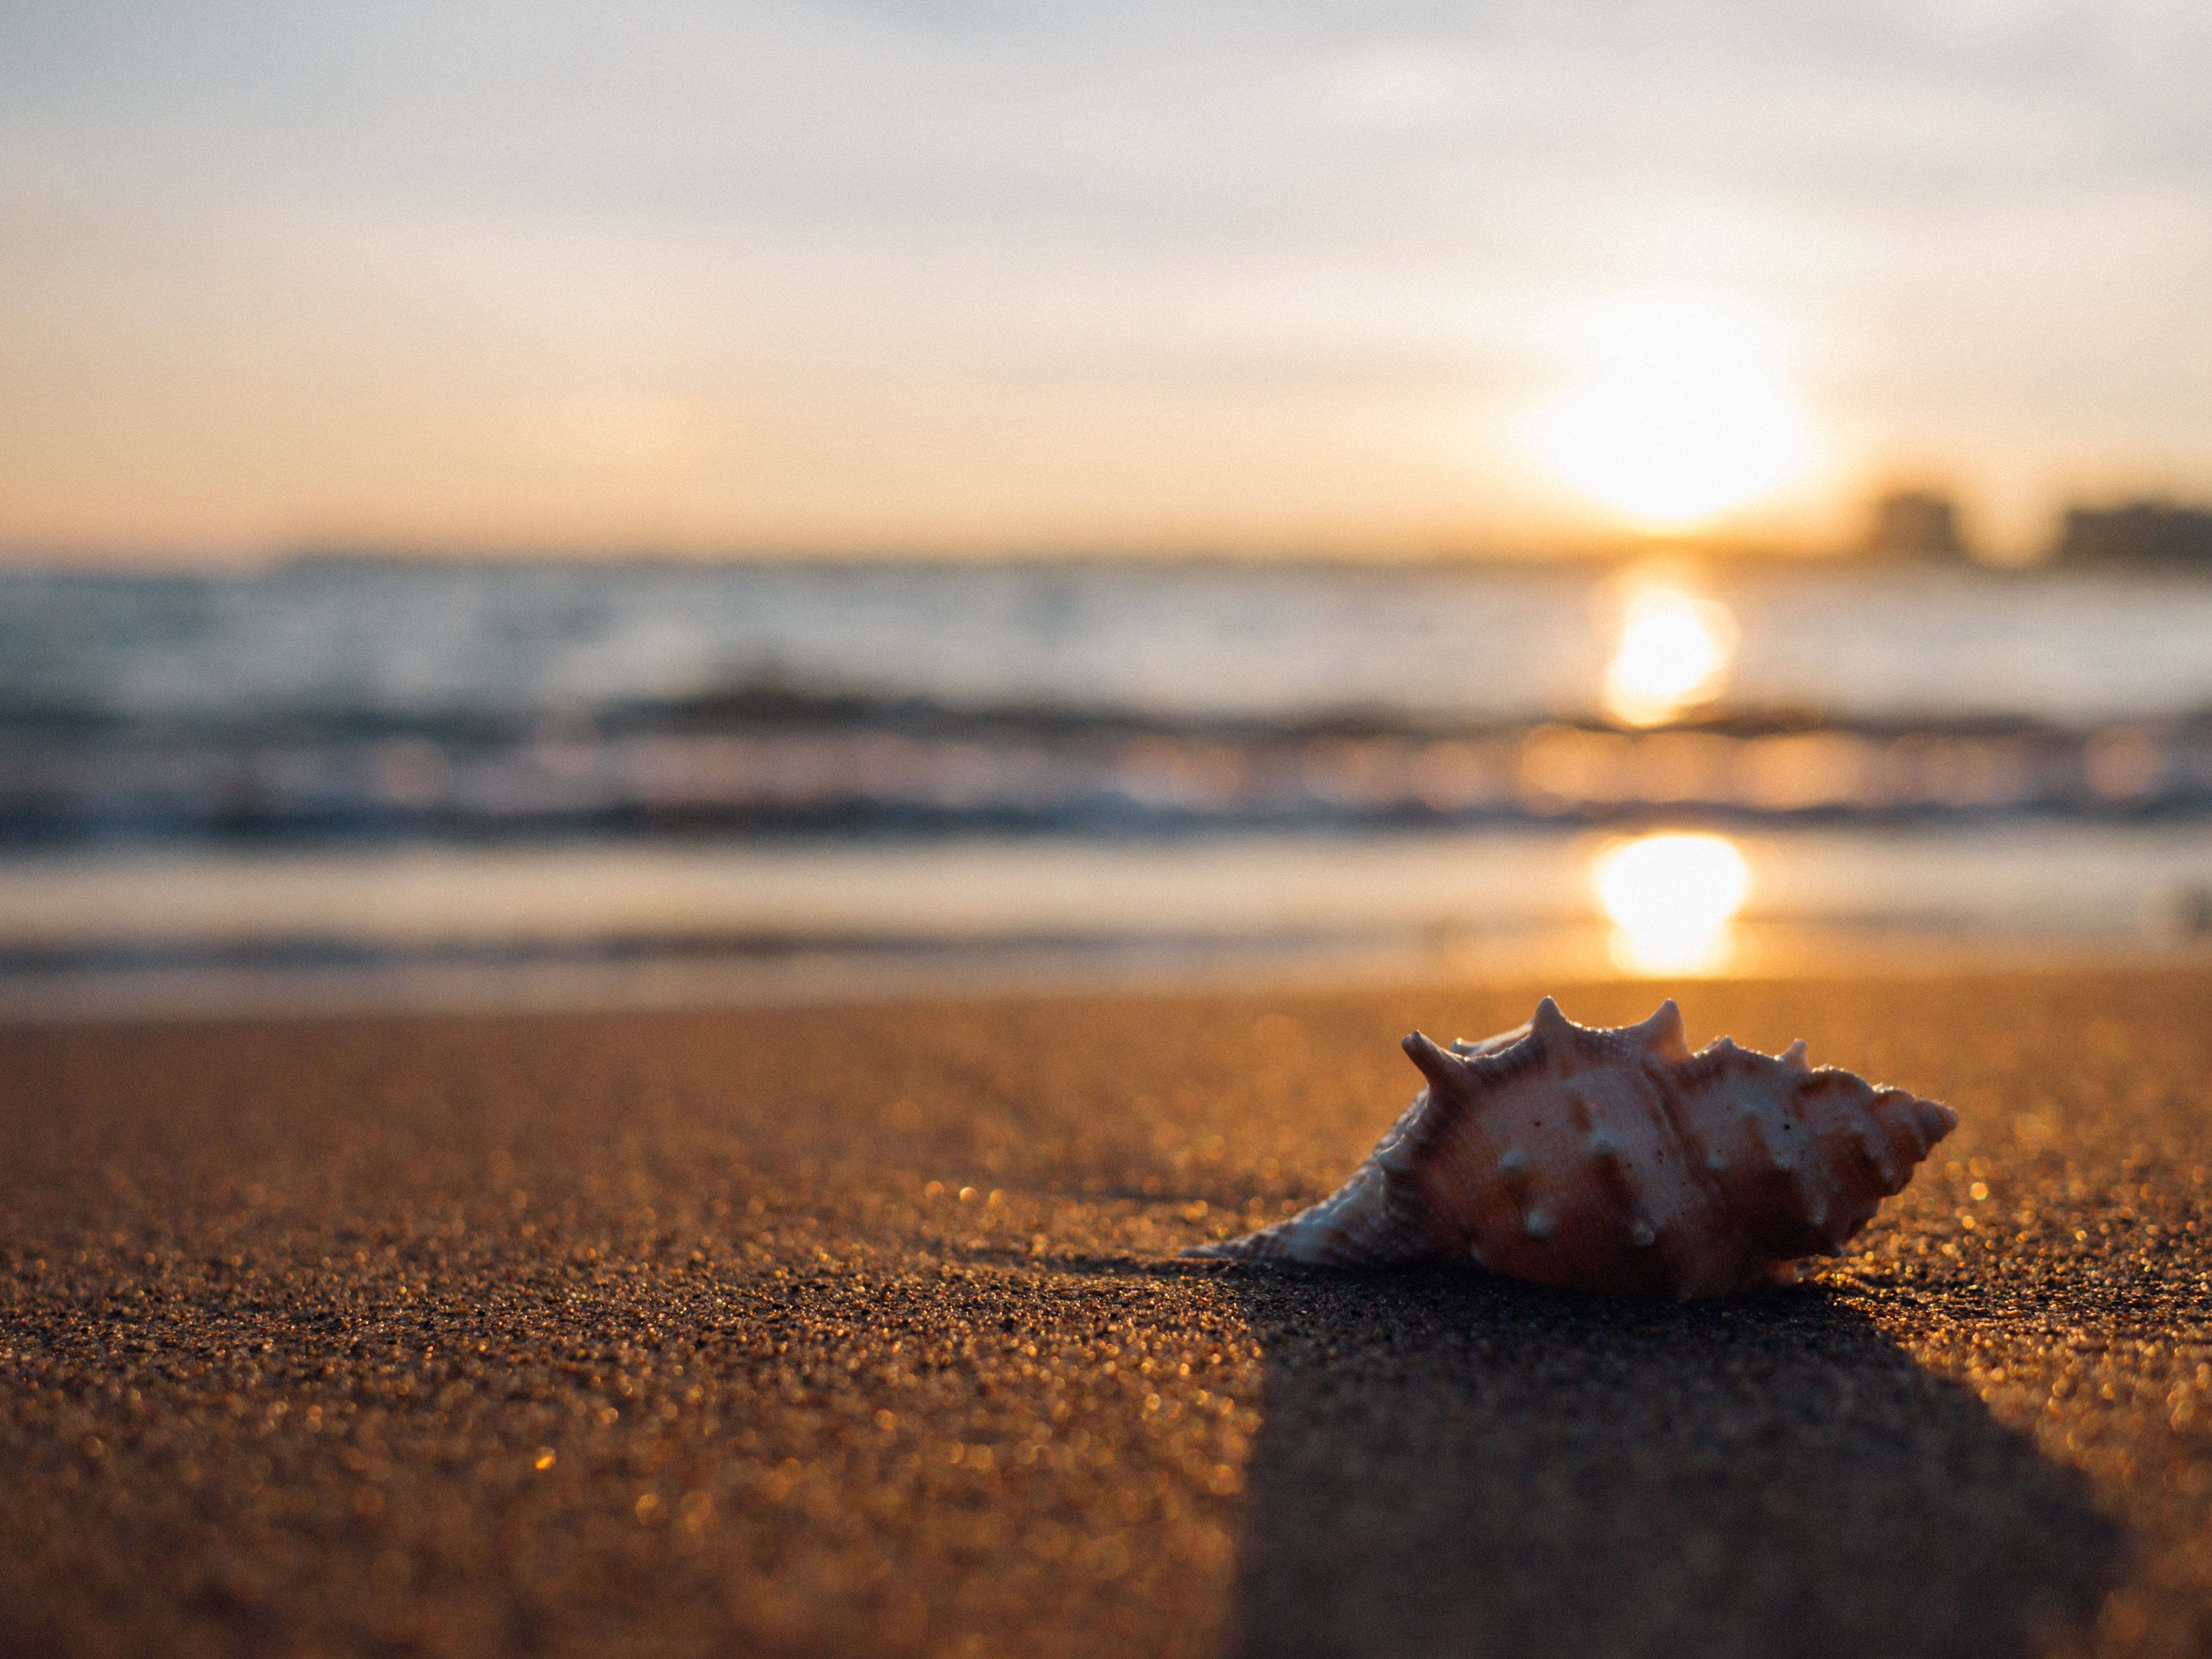 Shell on the fine sand beach during sunset